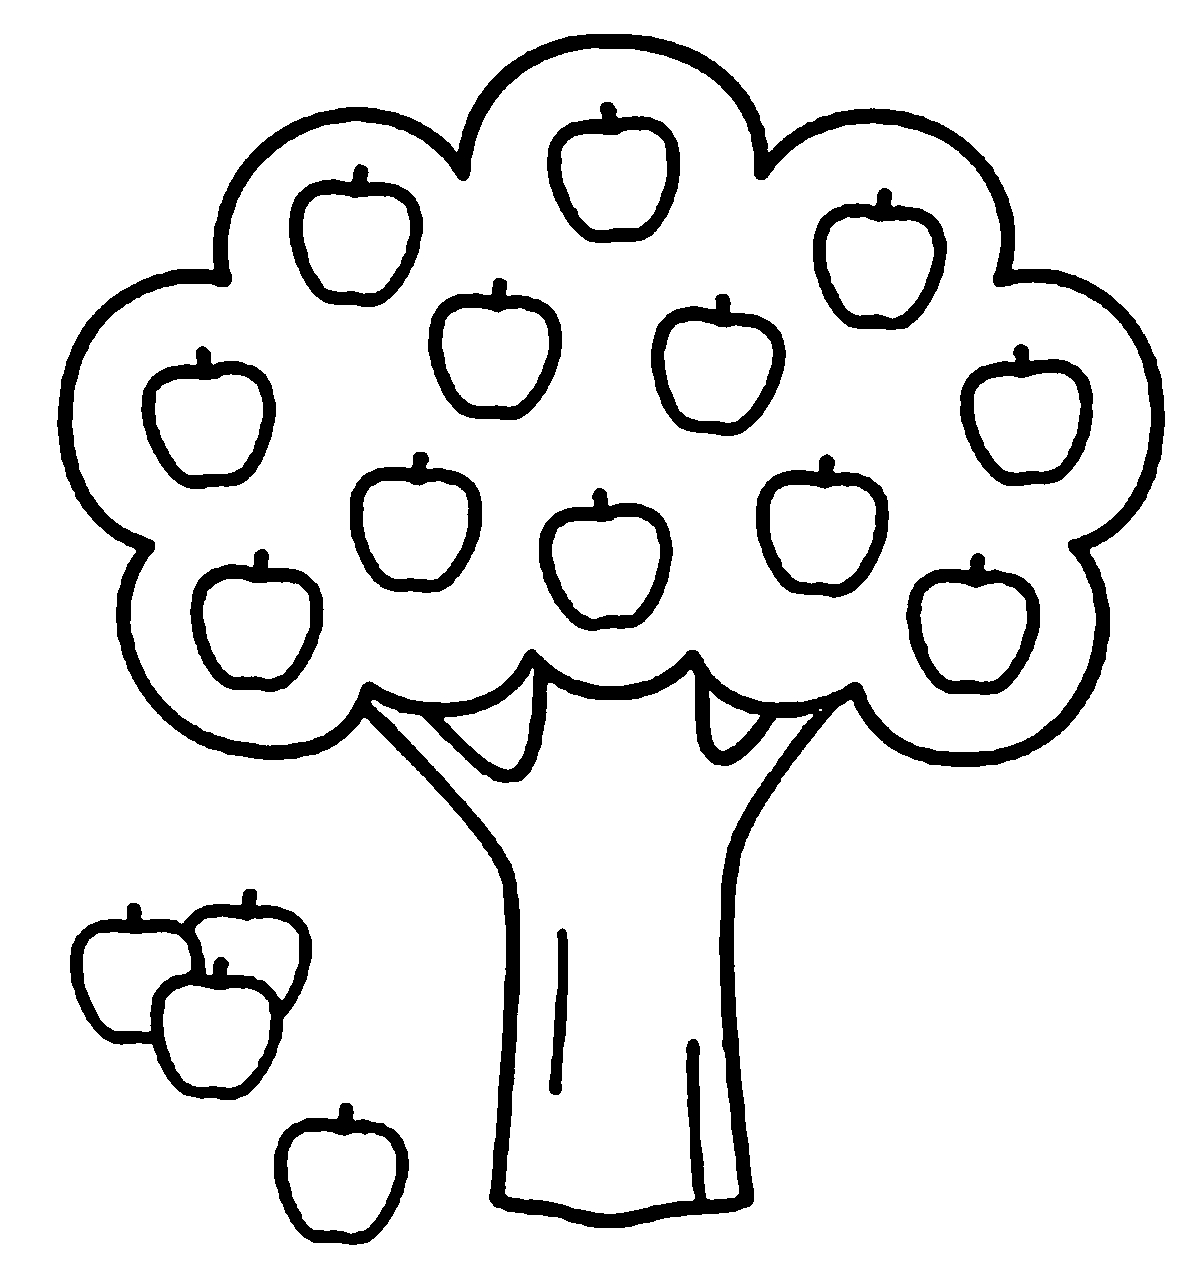 picture to coloring page - apple tree coloring pages